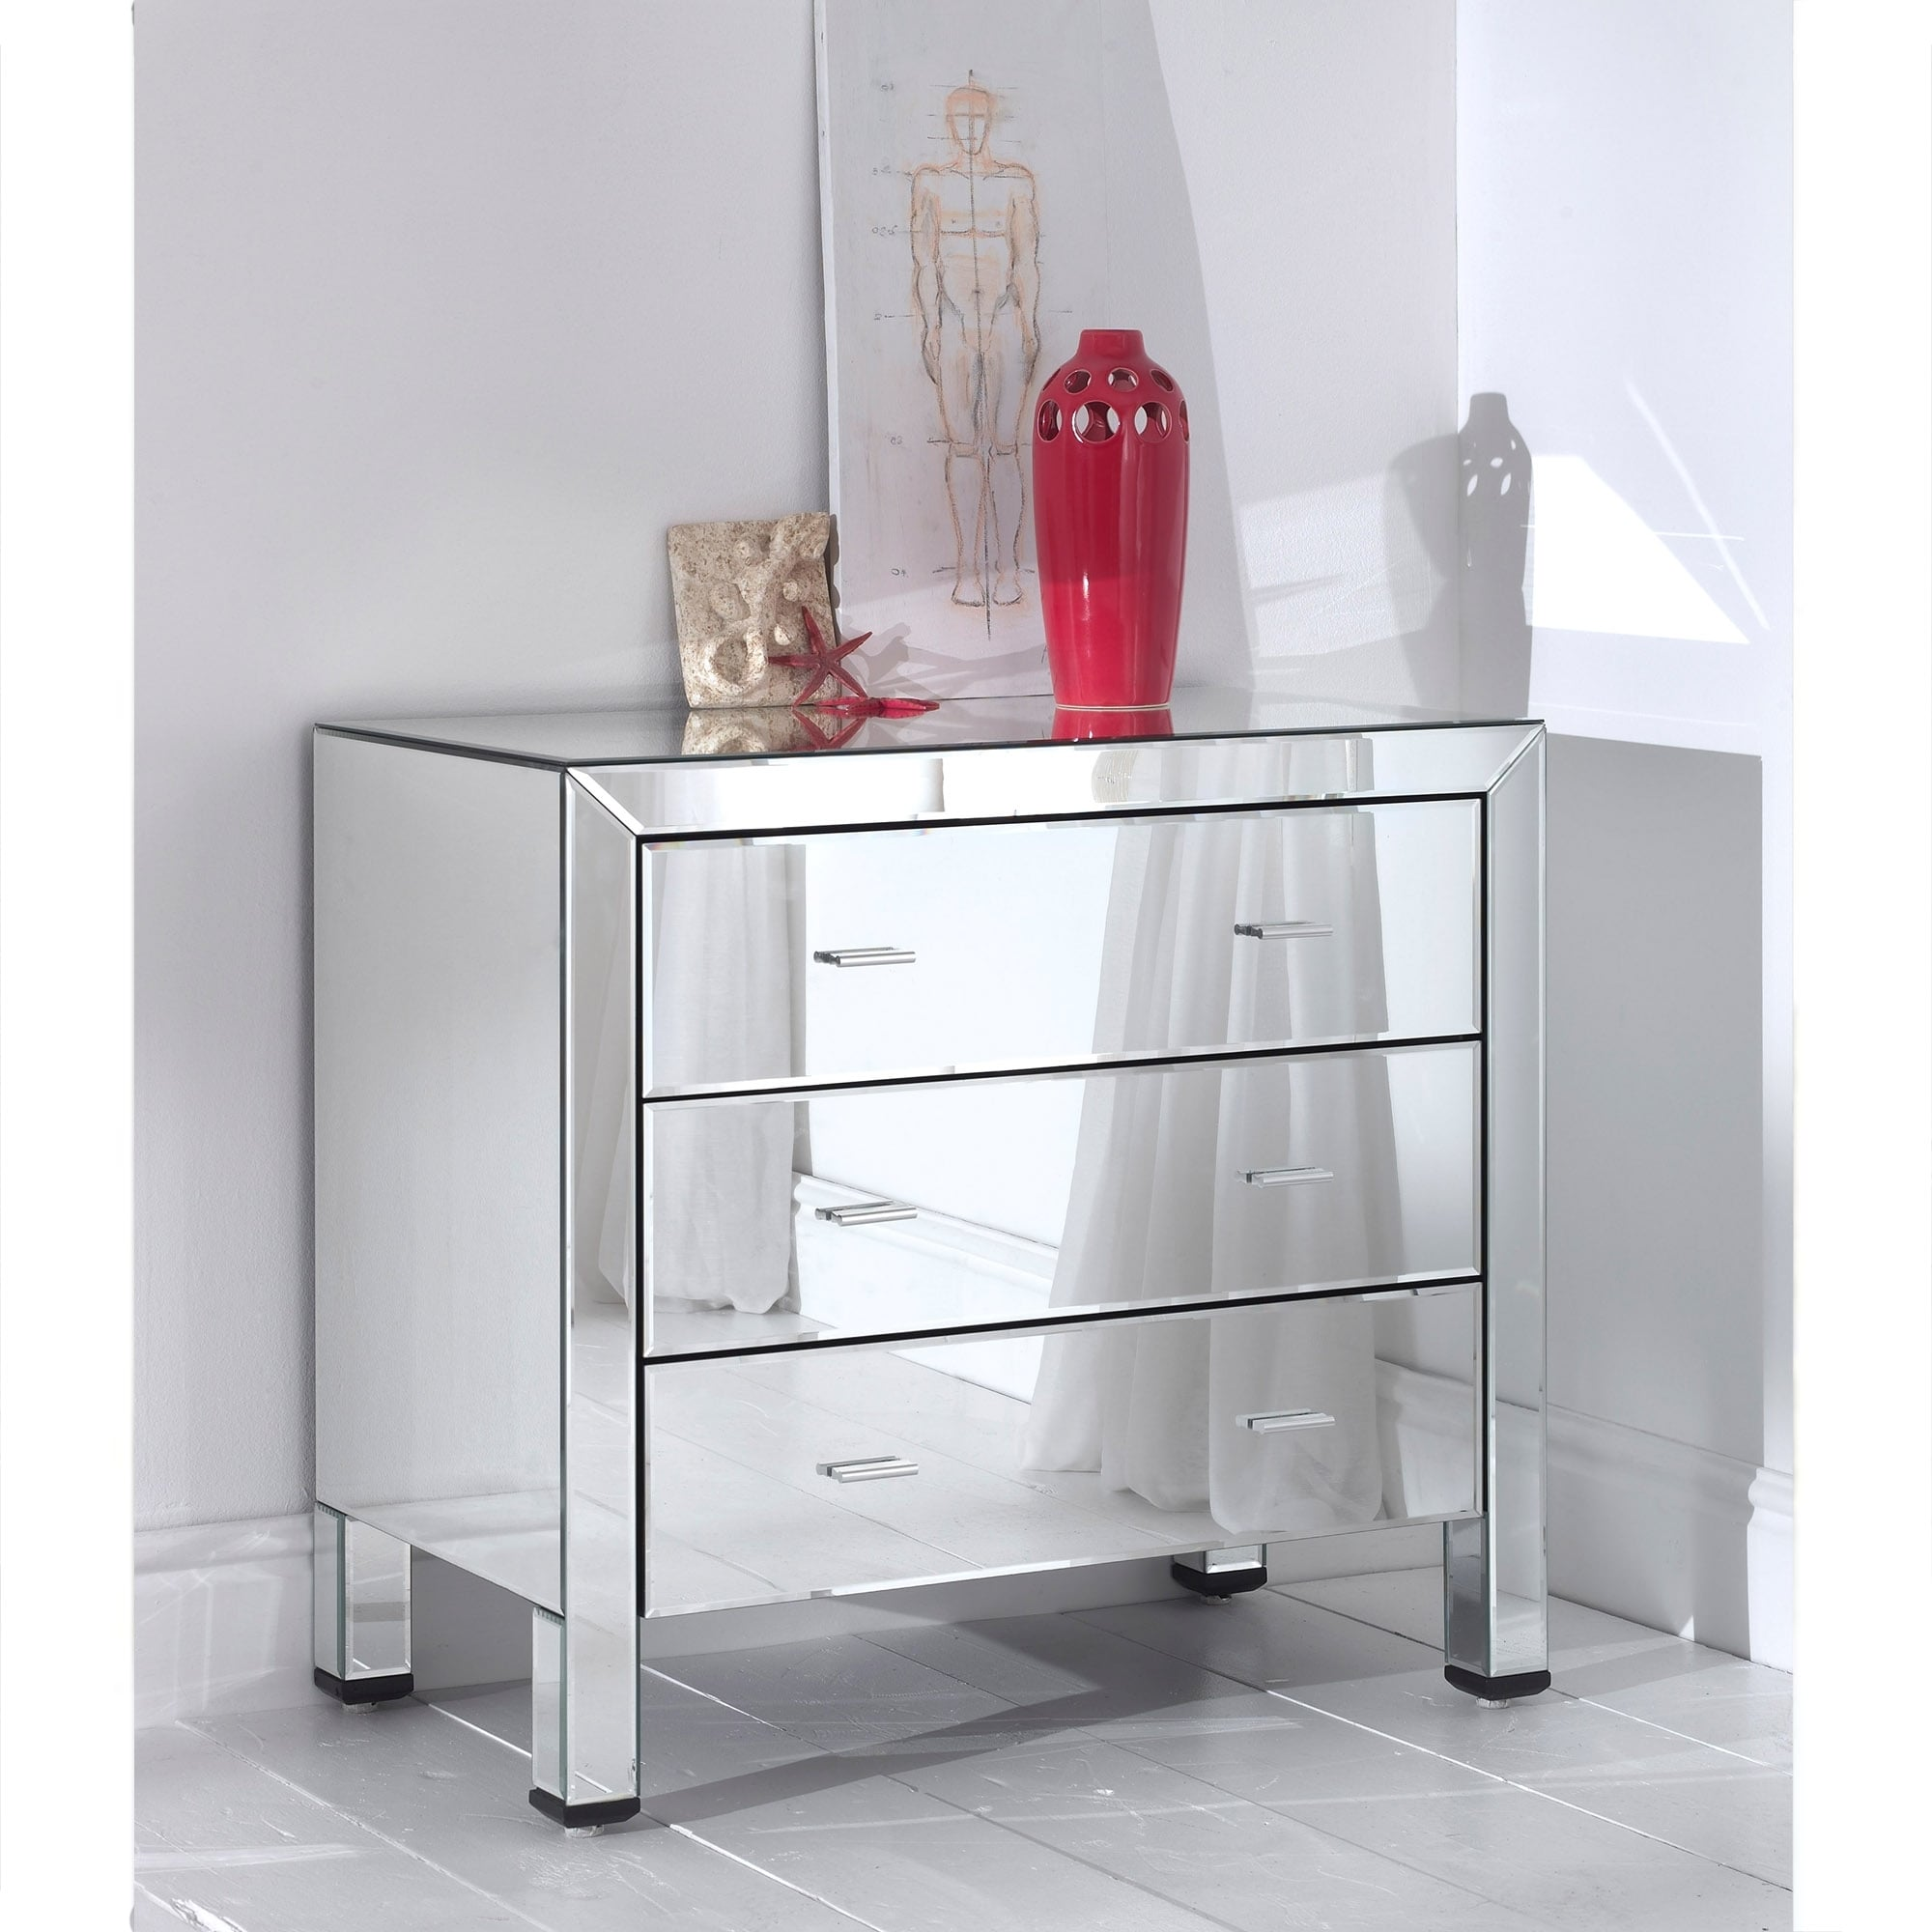 asp of overlay discoveries with drawers drawer chest w mirrored